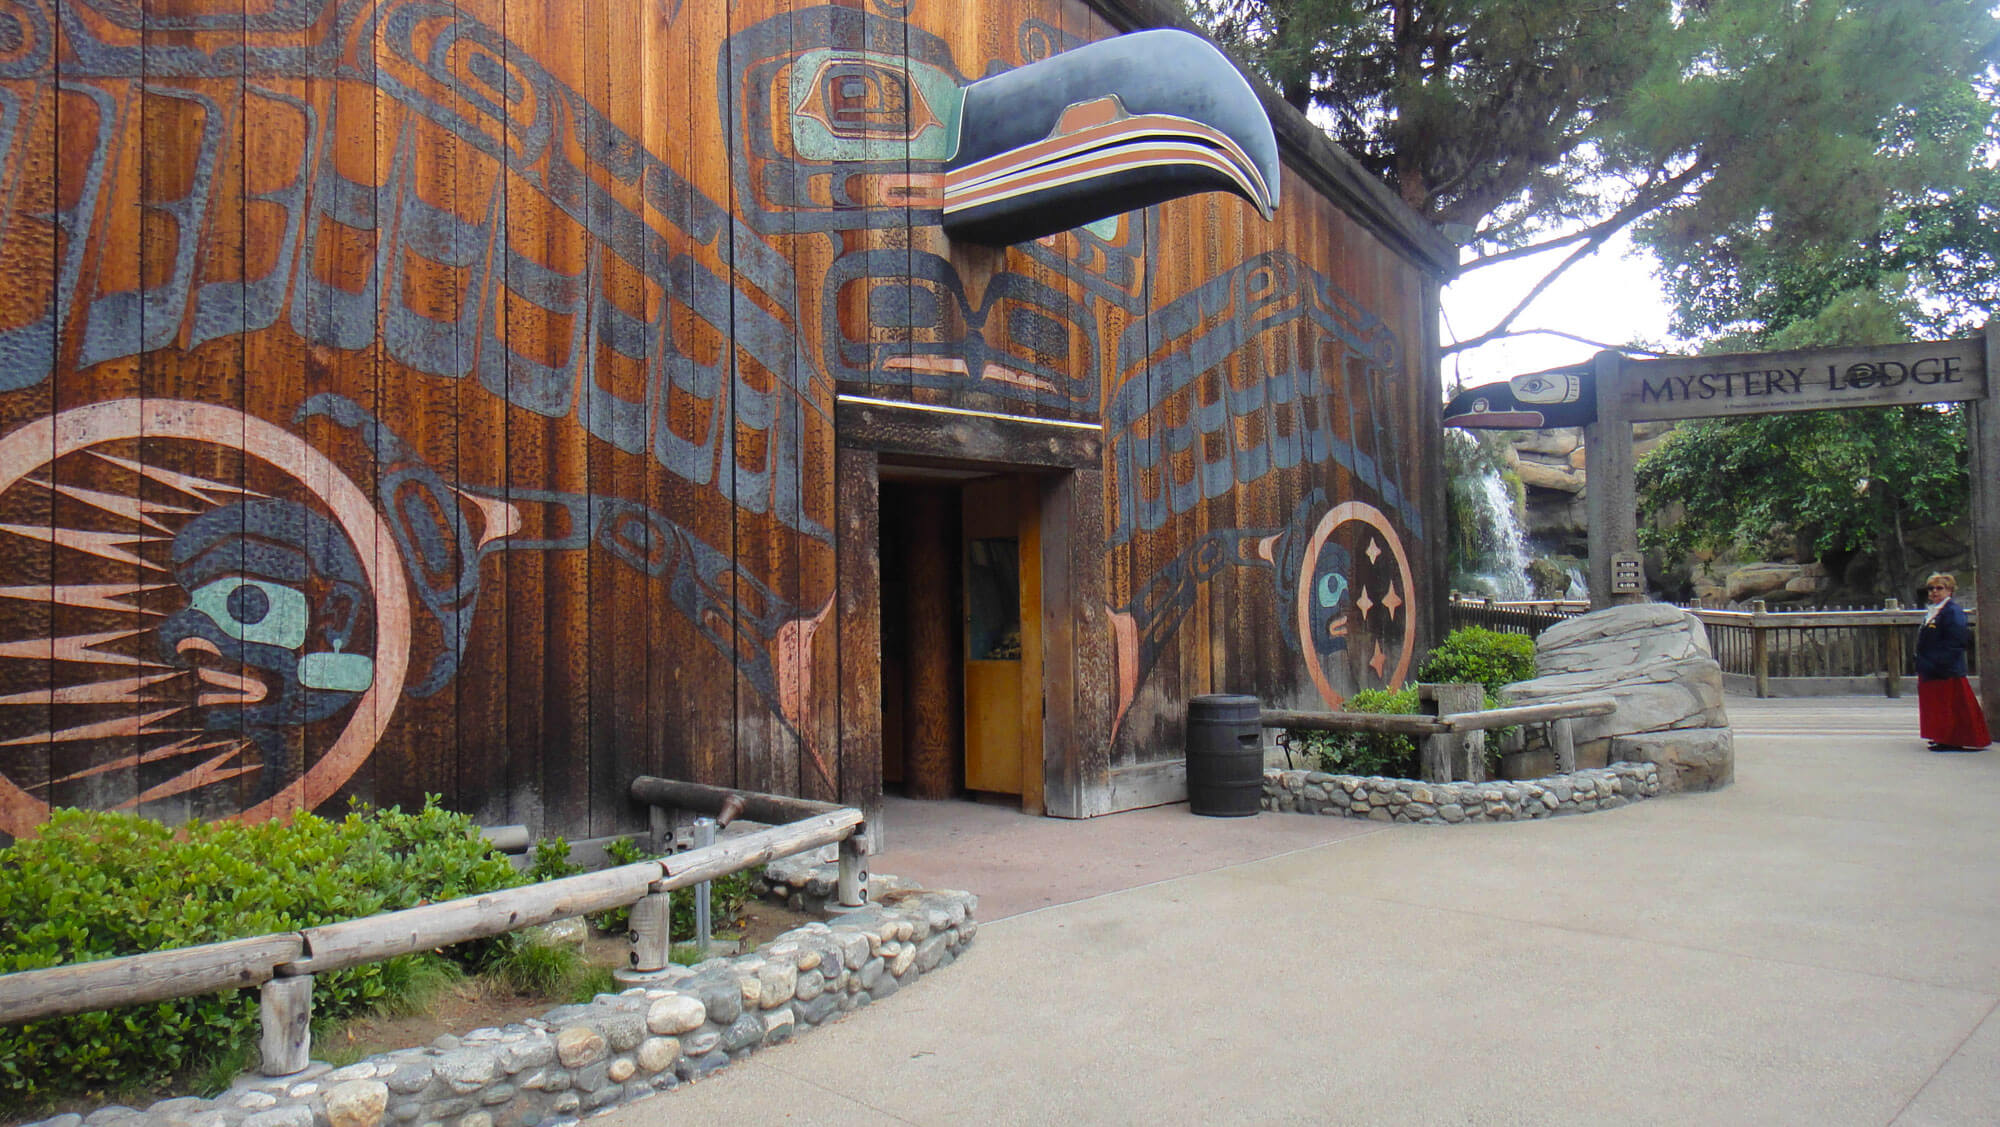 Not to miss Knott's Berry Farm  - Mystery Lodge